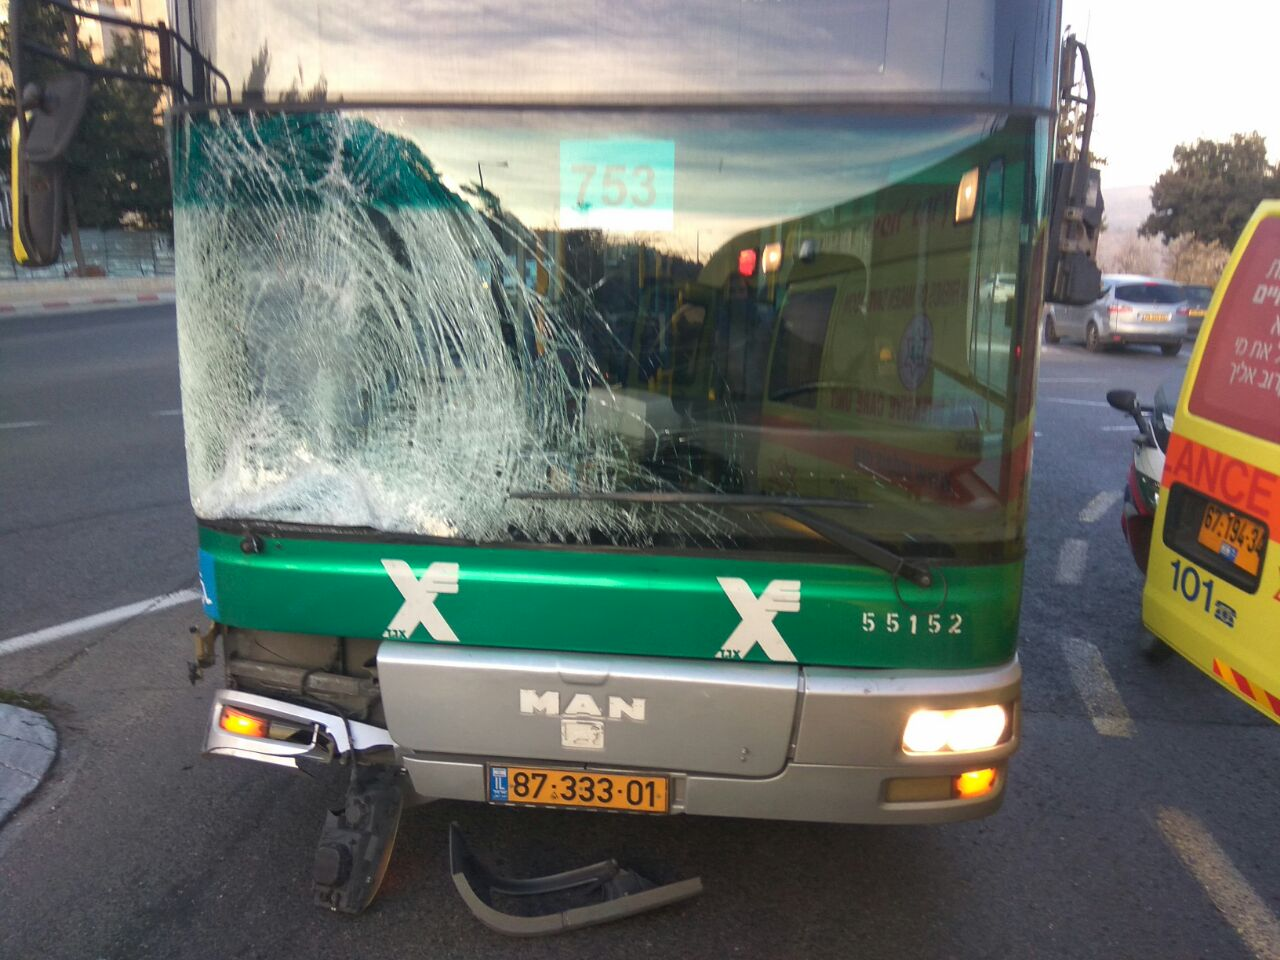 Accident On Golda Meir Blvd. In Yerushalayim Exposes Residents Aren't Being Taken Seriously